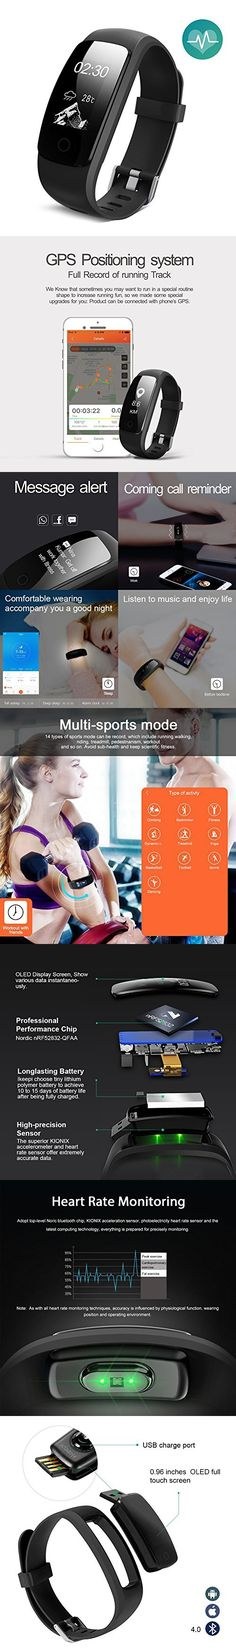 Ikeepi Fitness Tracker Heart Rate Monitor Multi Sport Modes Pedometer Sleep Monitor Waterproof for Android and Iphone Phones